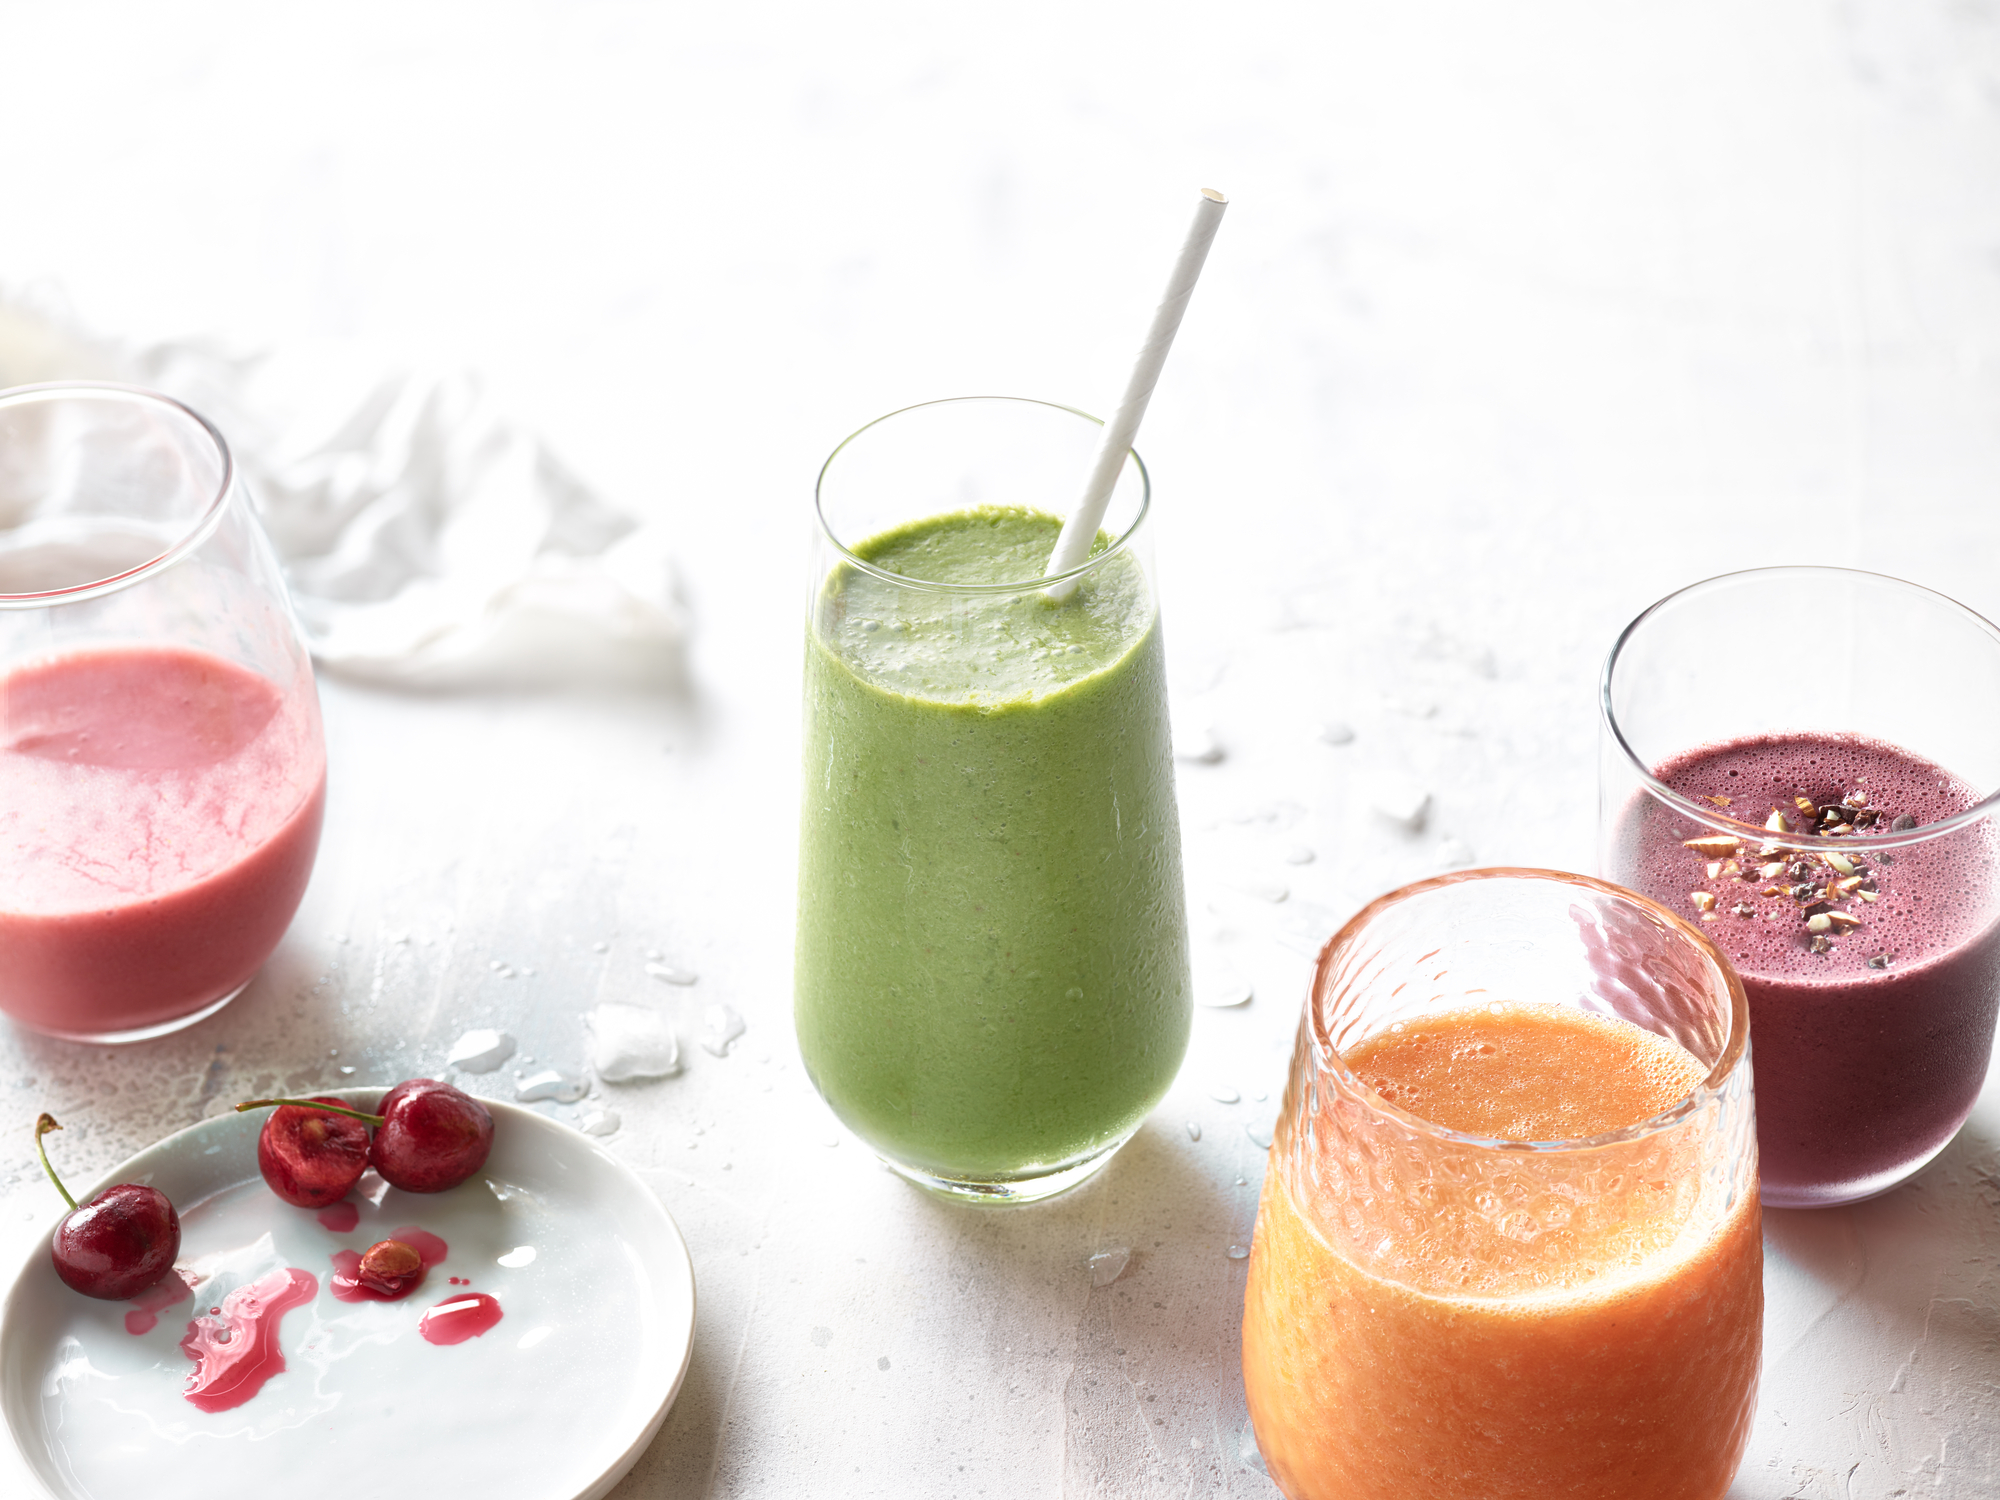 Making Large-Batch Smoothies at Home